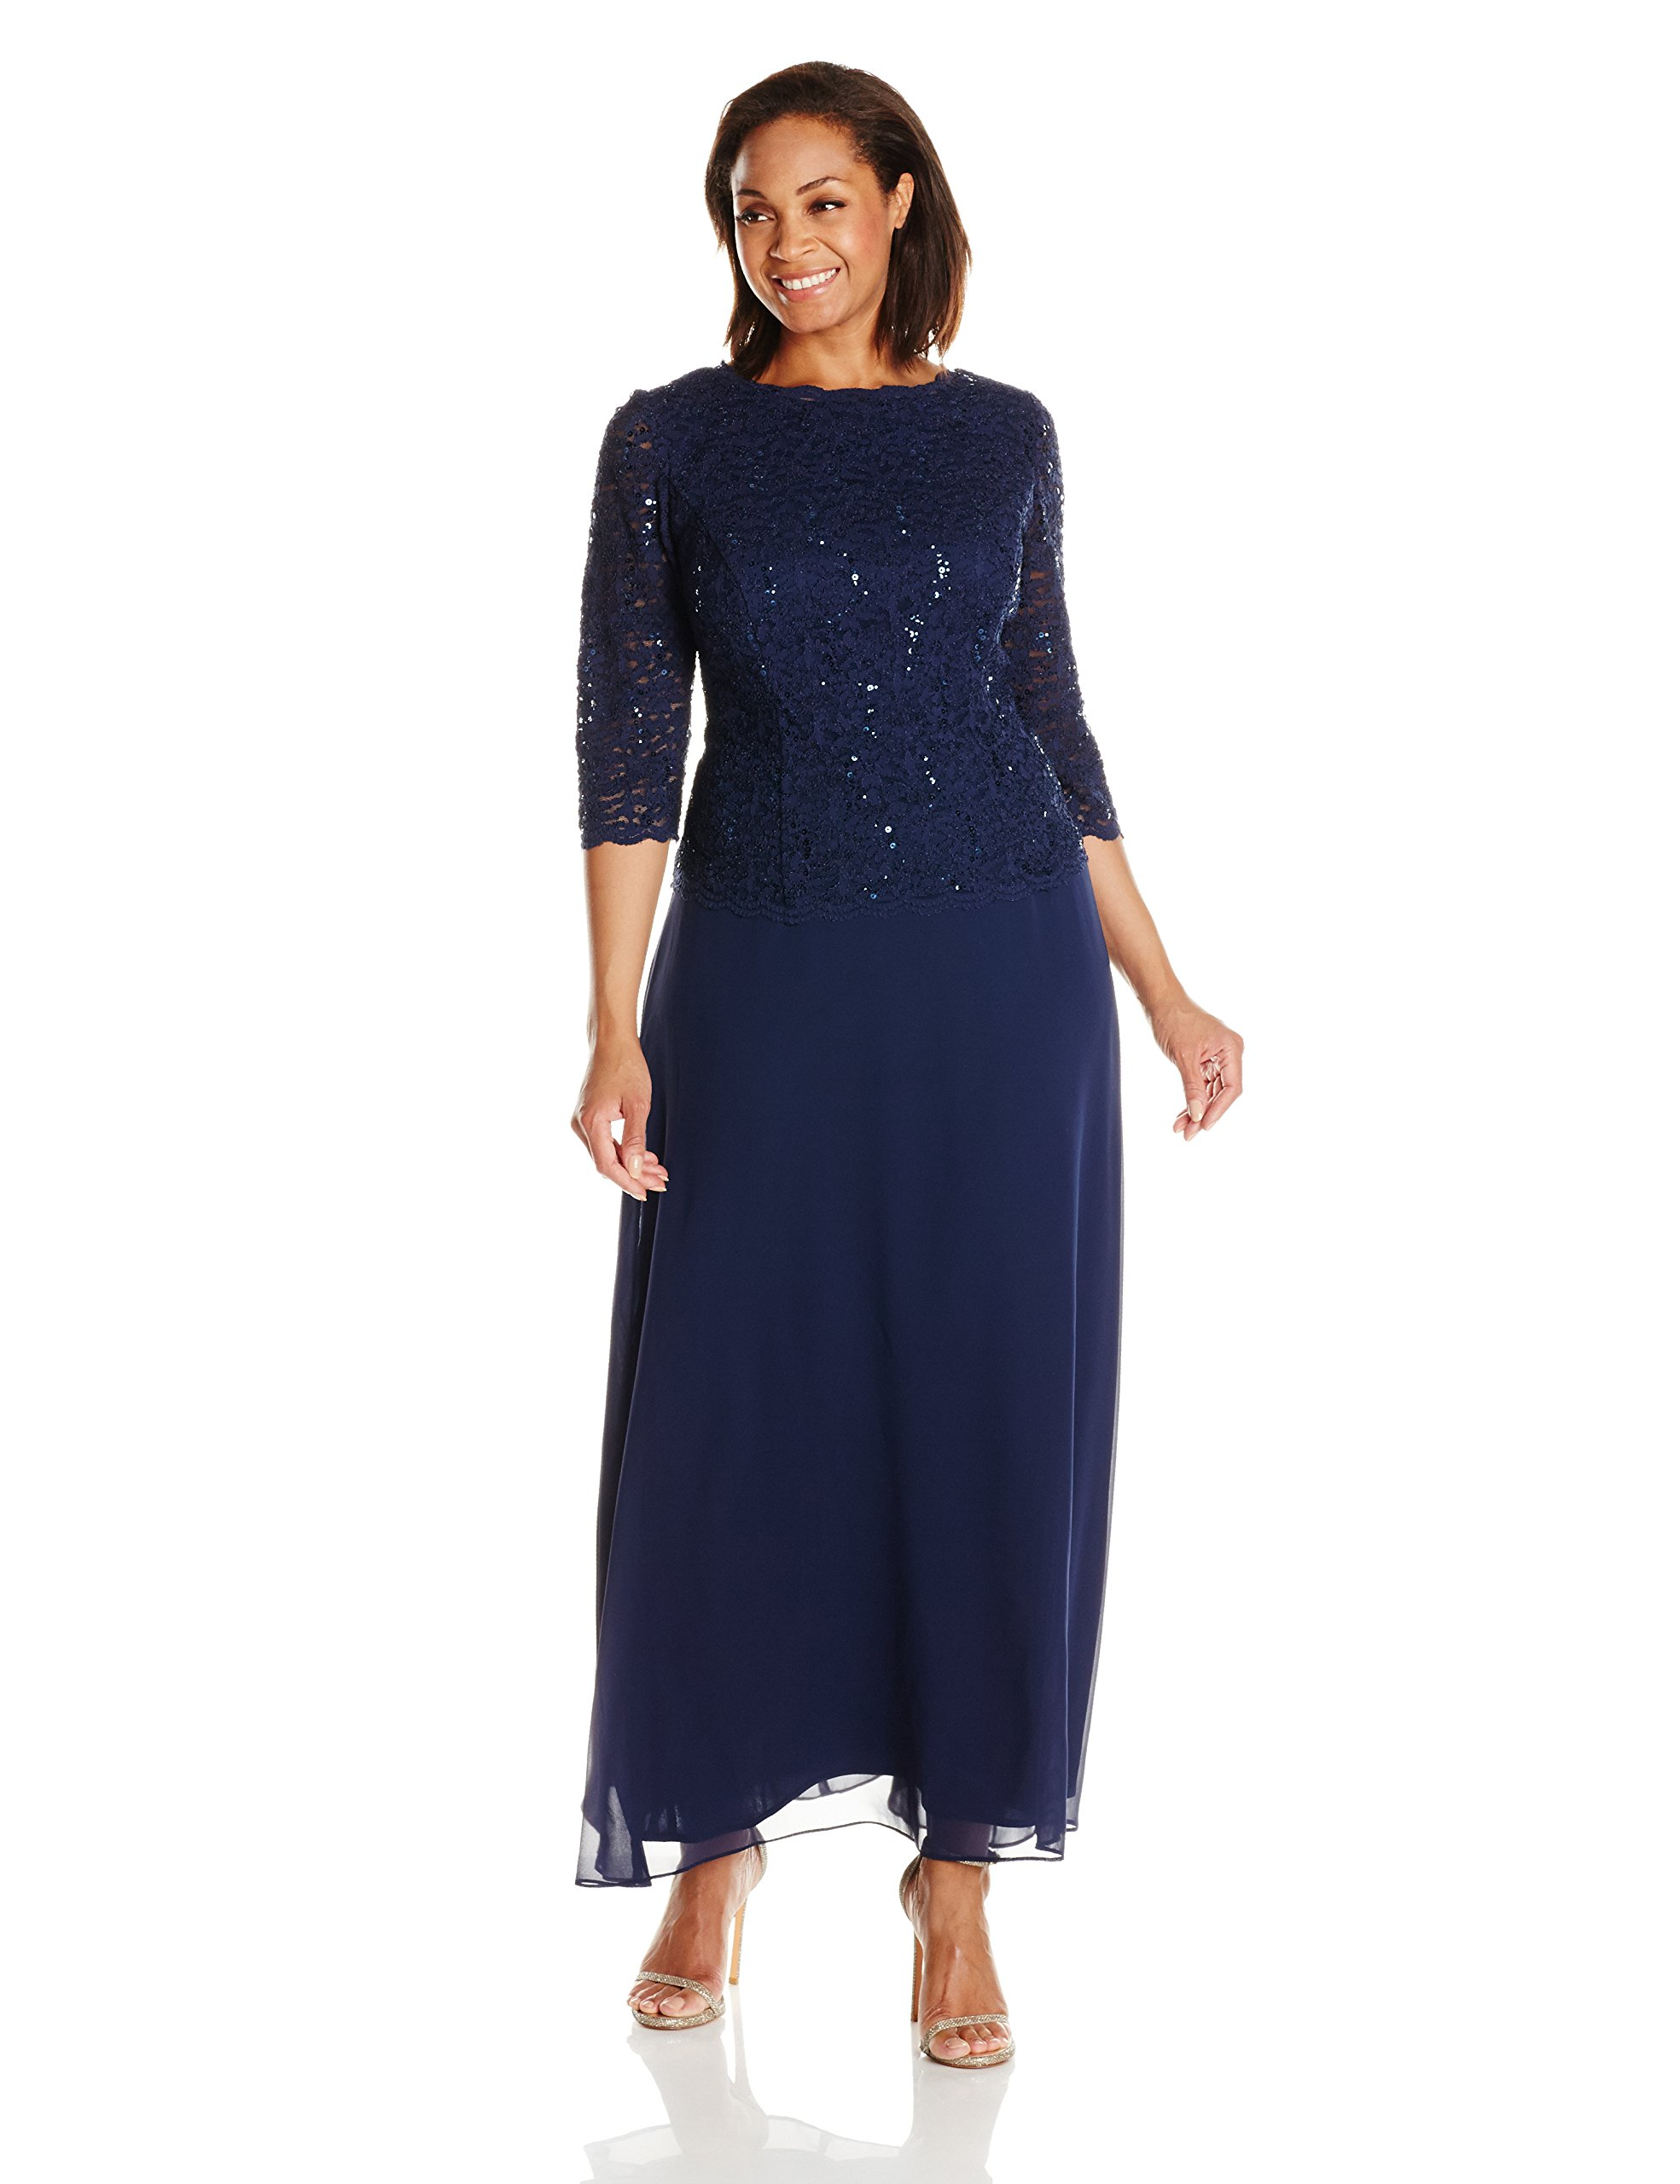 Alex Evenings Women's Plus-Size Mock Sequin Lace Bodice and Illusion Dress, Navy, 20W